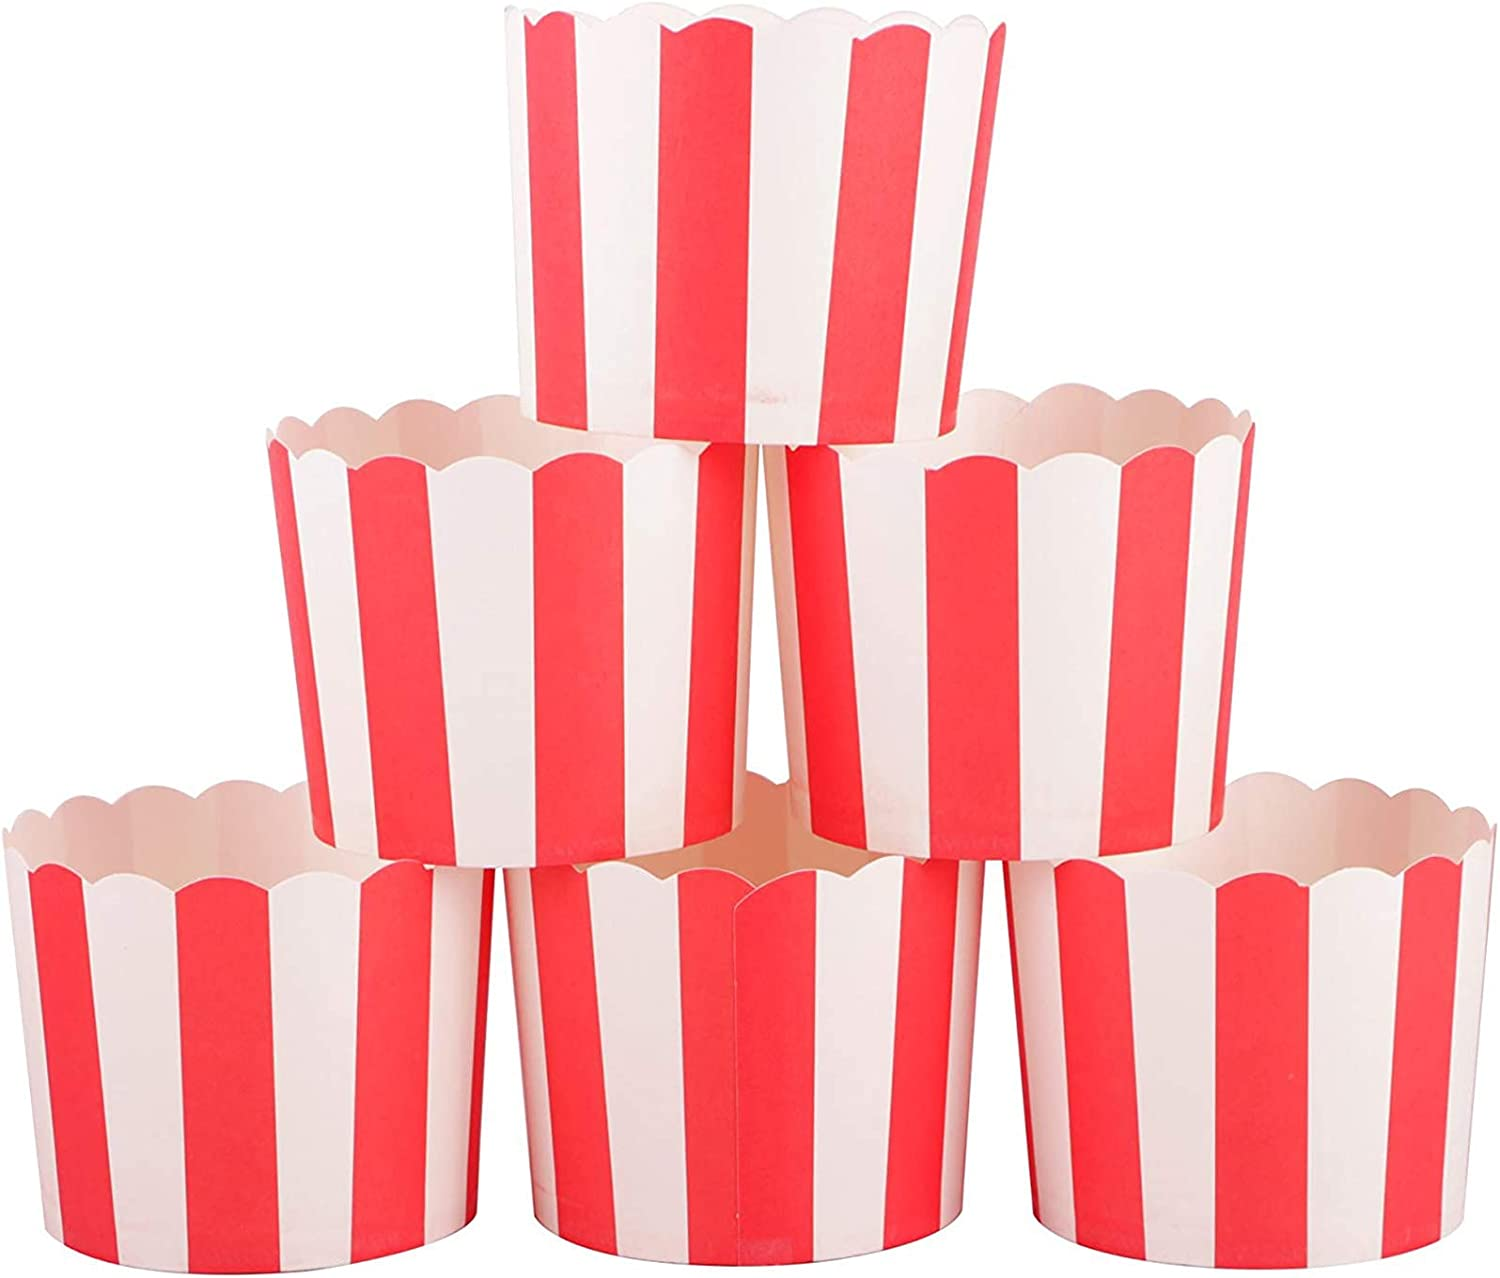 Webake Full Size Paper Baking Cups Red Cupcake Liners for Popcorn Cupcake, Cupcake Bath Bomb, Muffin Case, Great for Valentine's Day Cupcake Baking Decoration Set of 25 (Red Stripe)